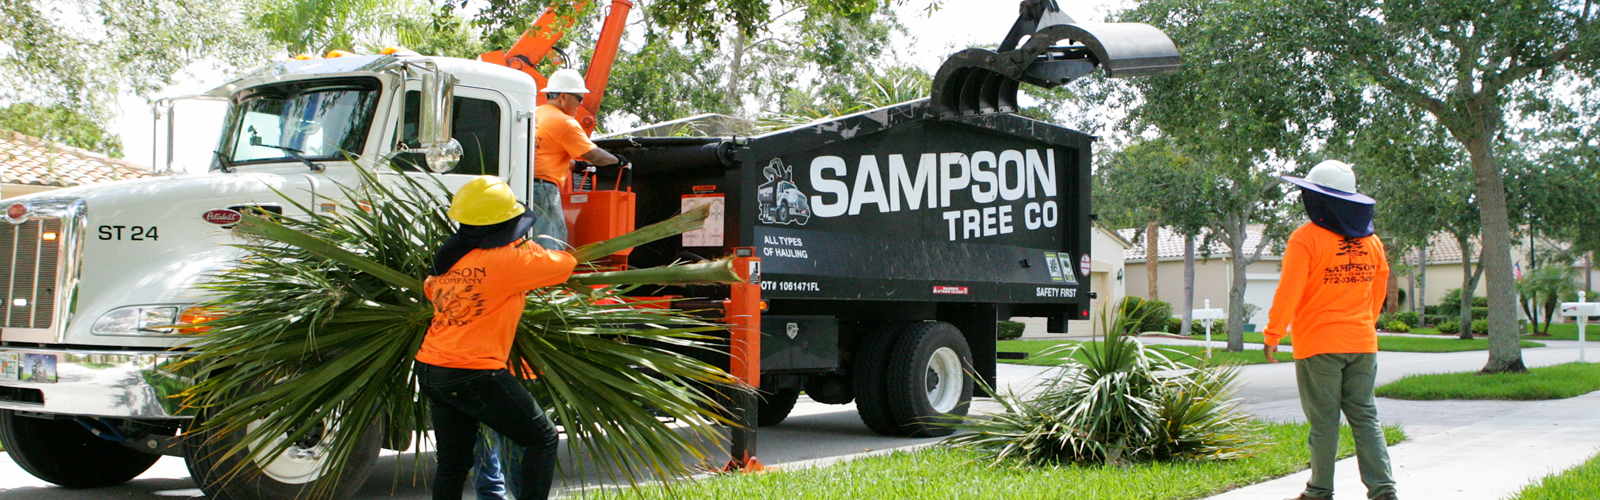 Sampson Tree Service Truck